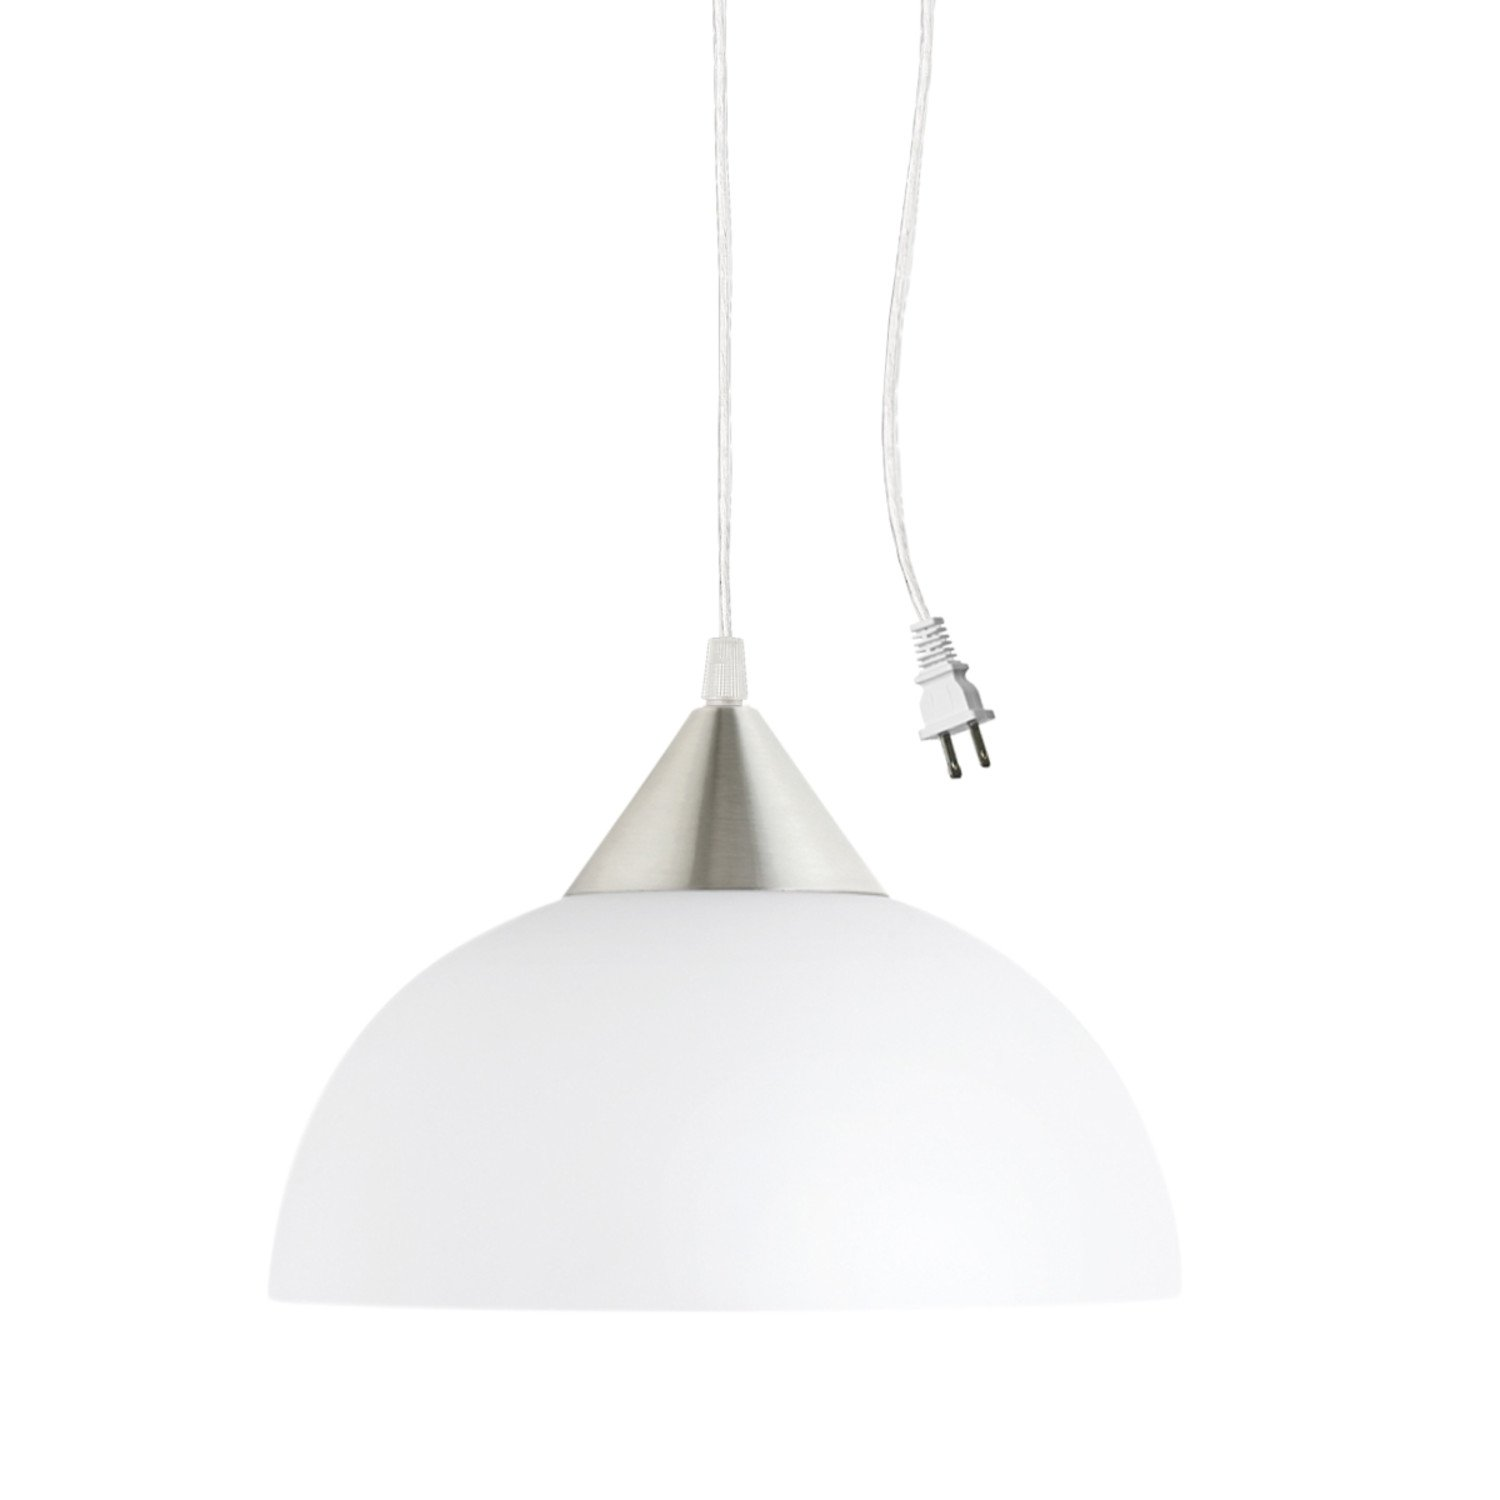 1 light portable hanging plug in pendant white shade swag hooks ceiling lamp 689998659591 ebay. Black Bedroom Furniture Sets. Home Design Ideas